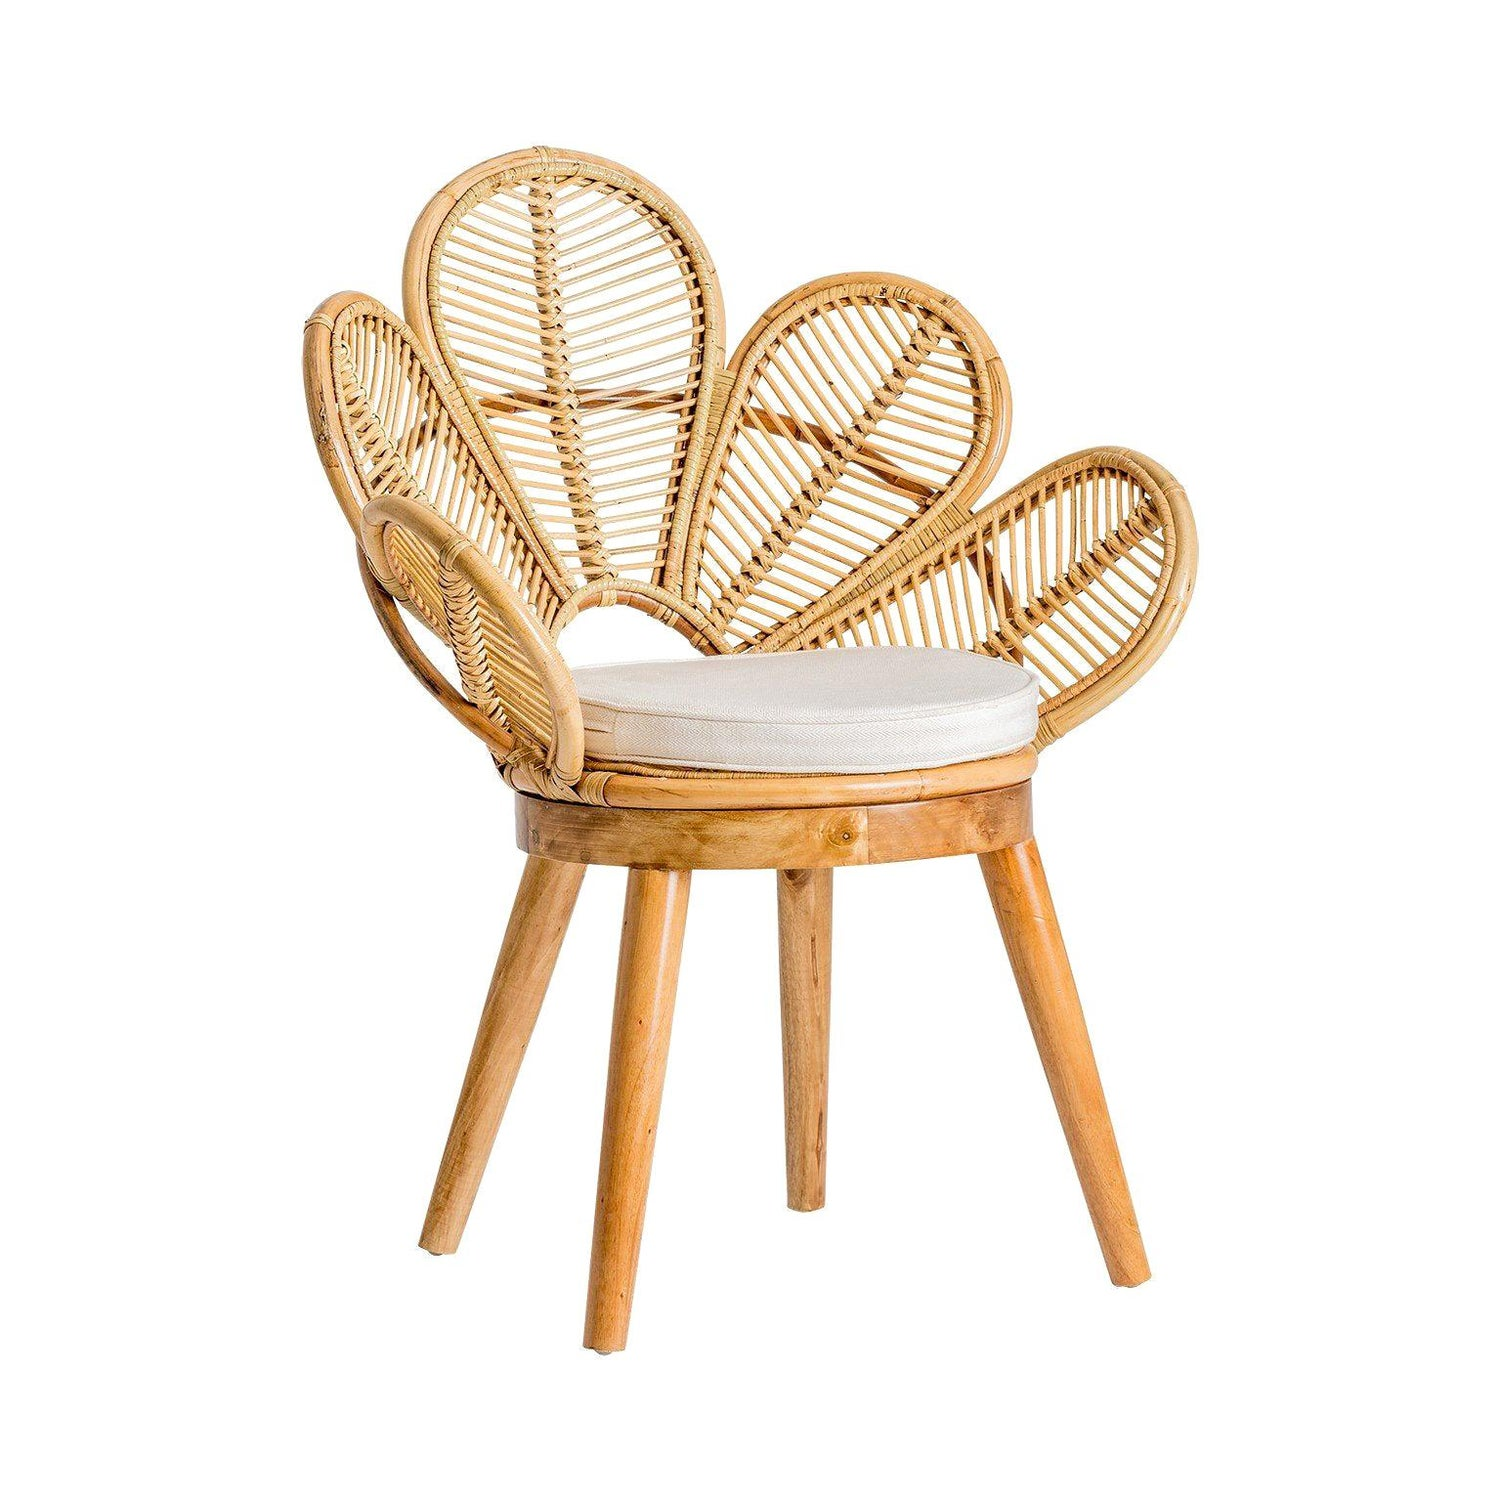 Rattan Petal Chair Outdoor Garden Furniture Flower Rattan Chair Pita 84 797987481 Buy Rattan Chair Outdoor Garden Outdoor Rattan Garden Chair Furniture Rattan Furniture Rattan Outdoor Rattan Chair Outdoor Rattan Chairs Papasan